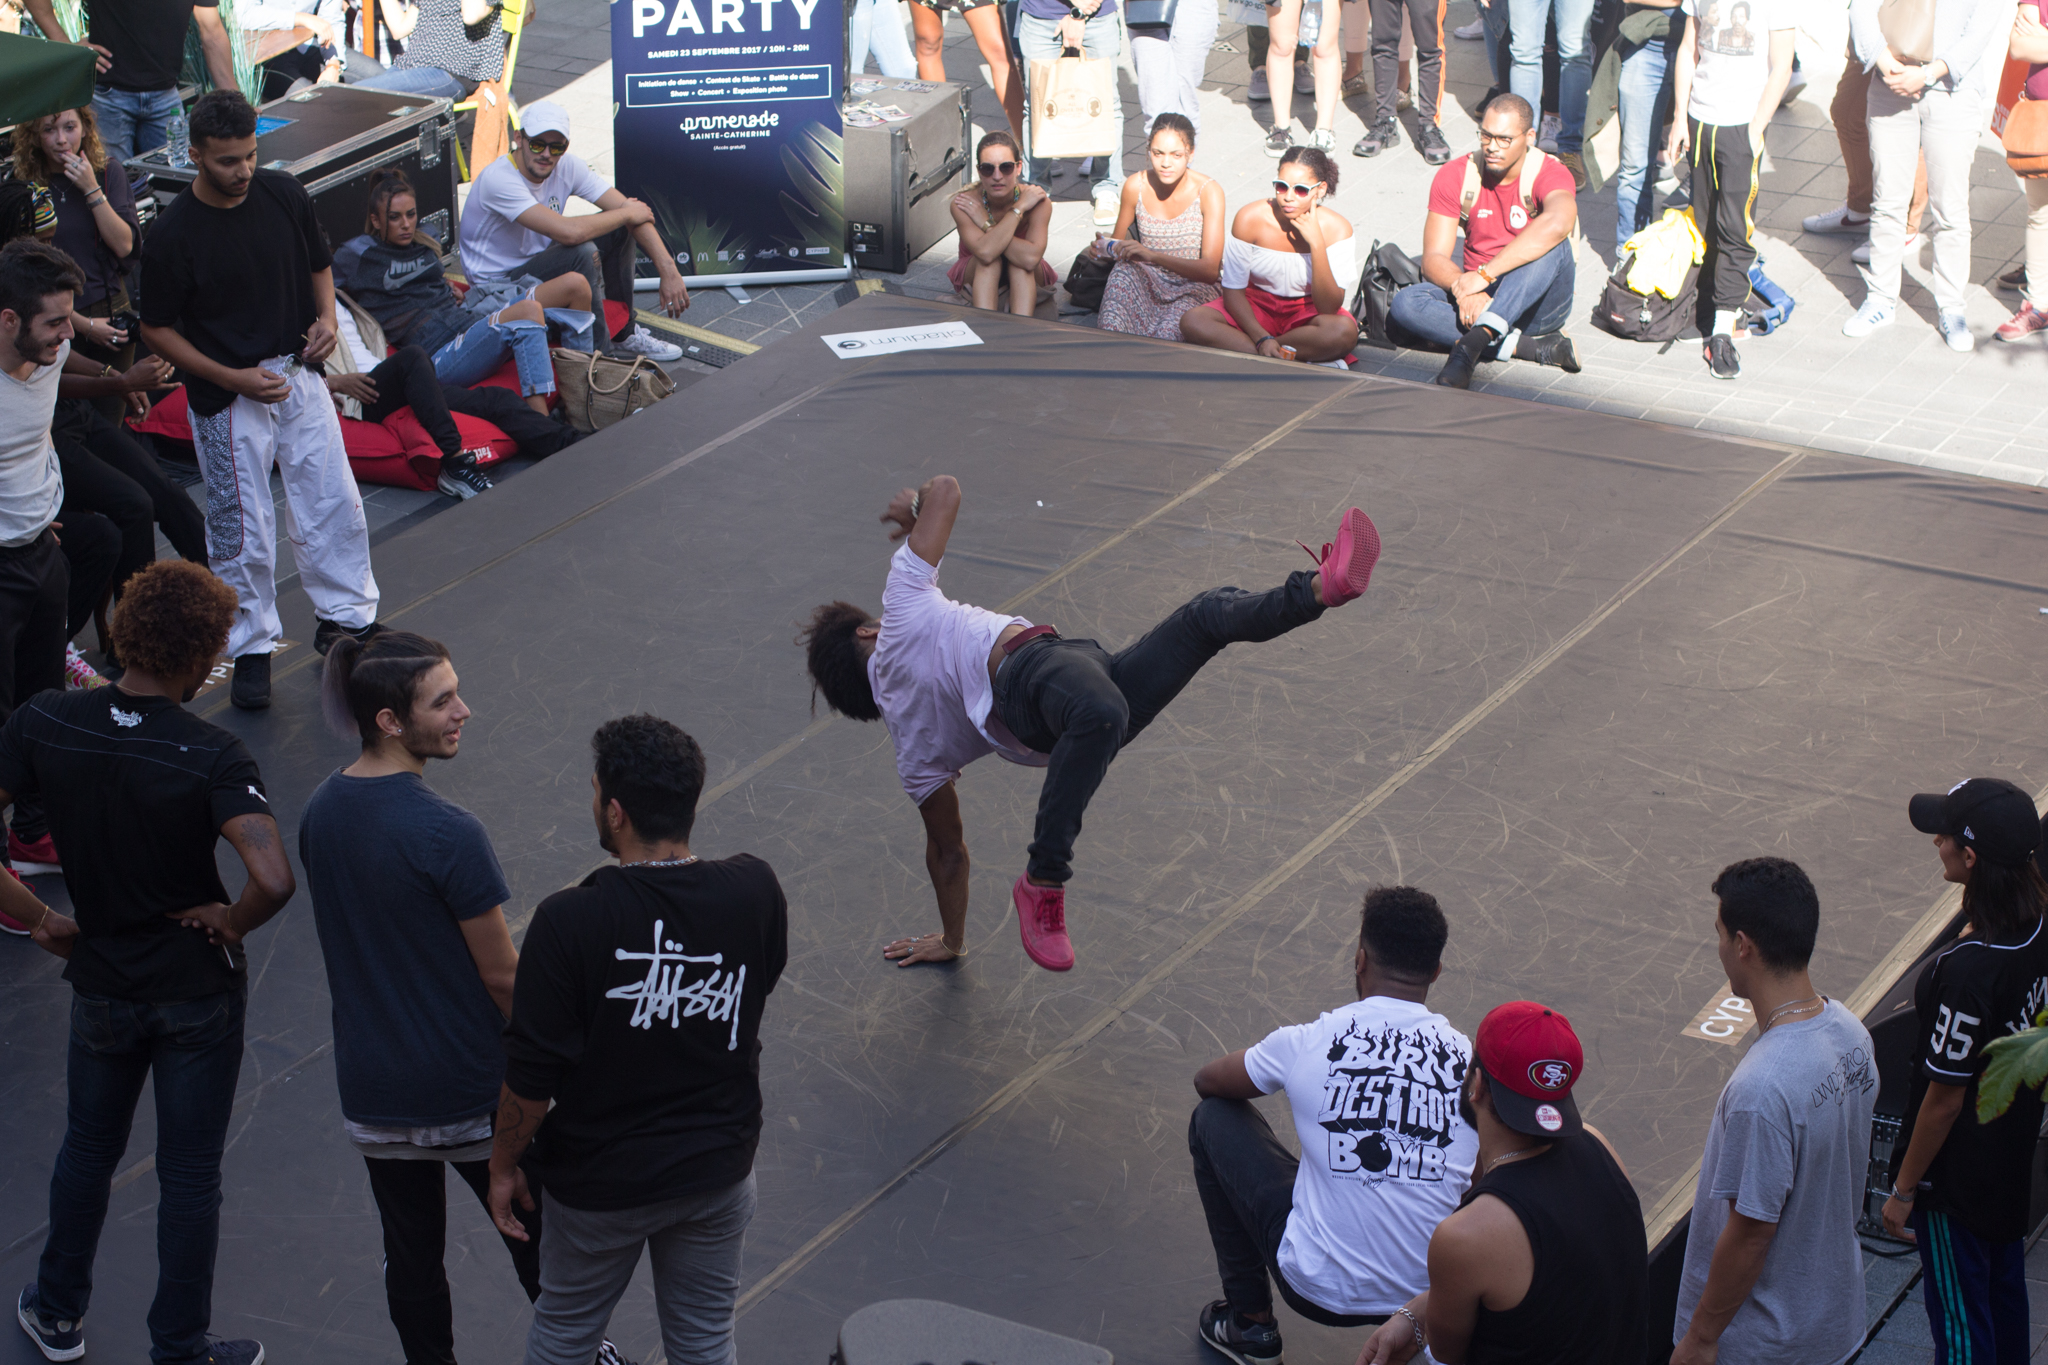 These breakdancing street performers were amazing to watch!